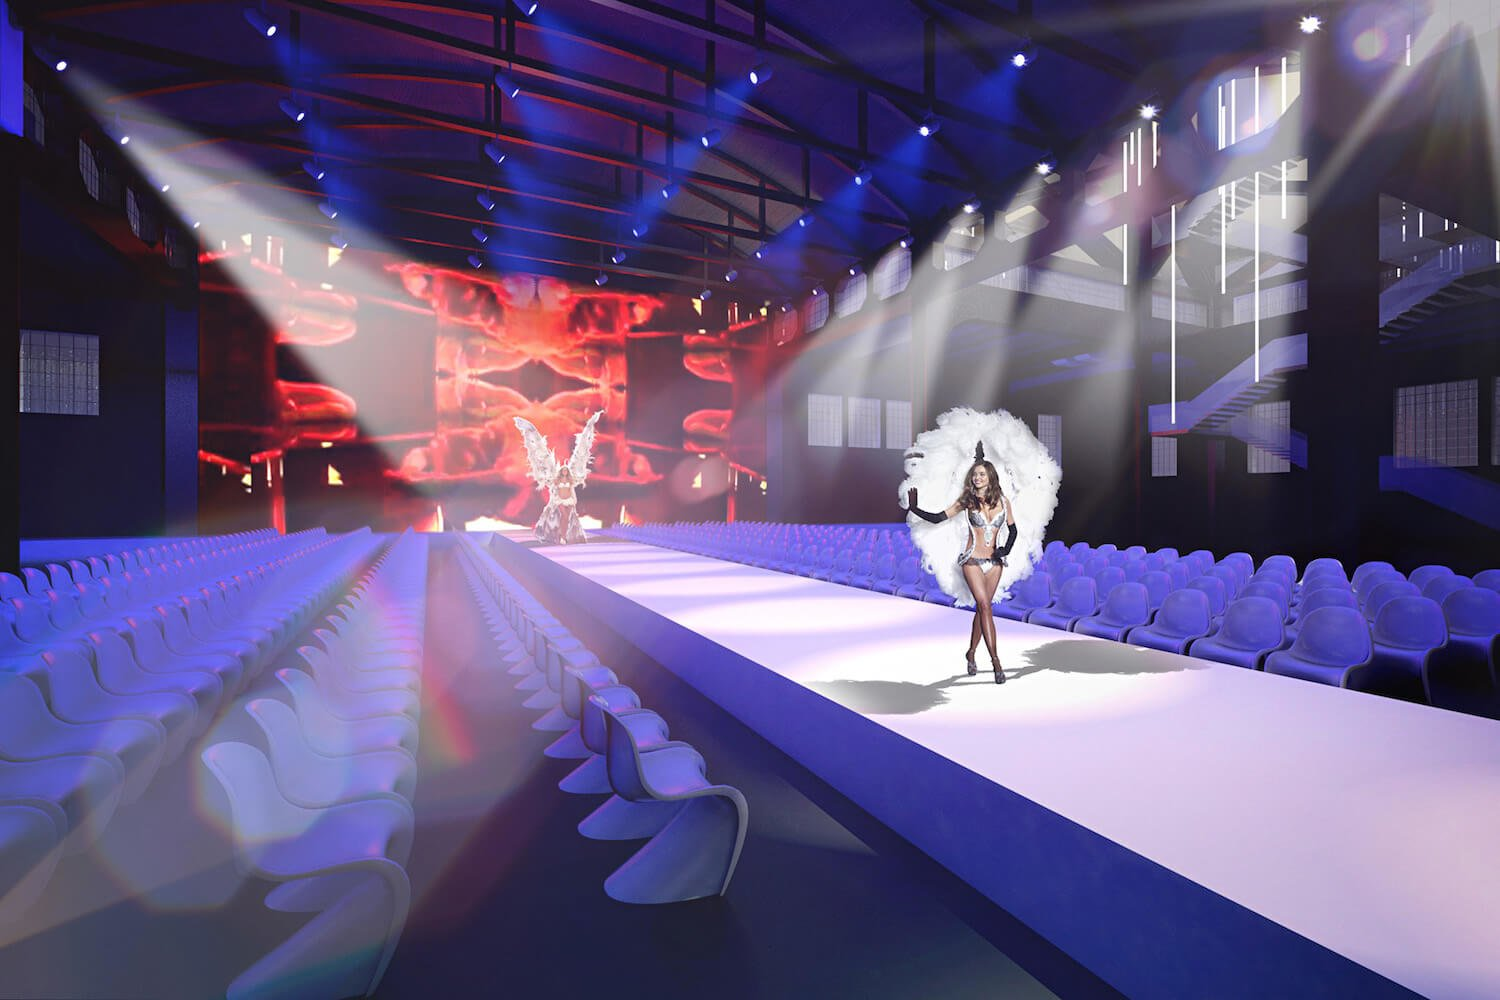 Liong Lie architects Warschaw Theatre catwalk